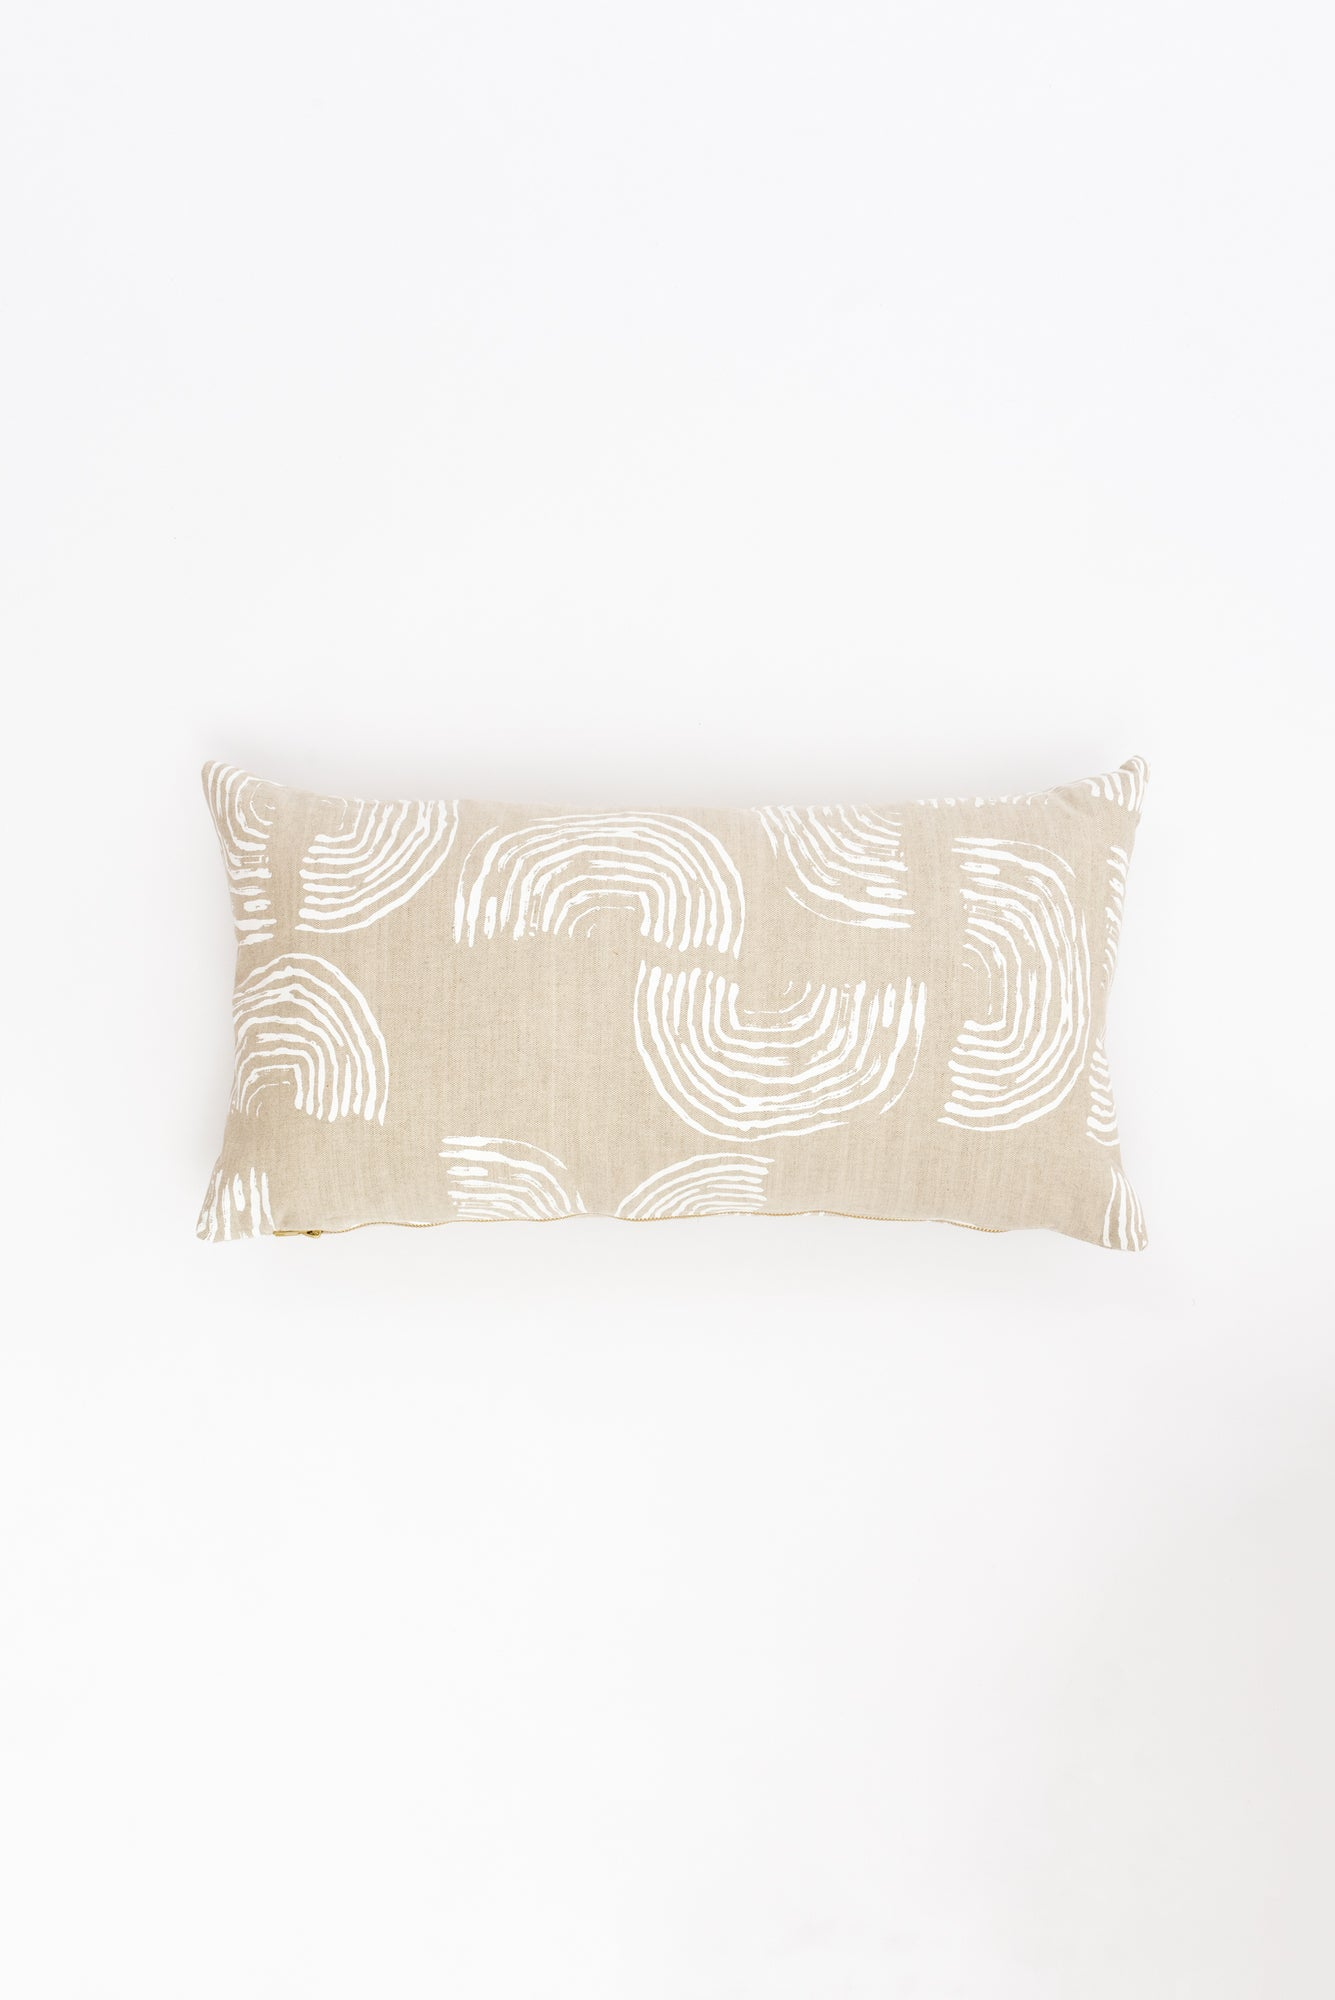 Squiggles Bolster Pillow